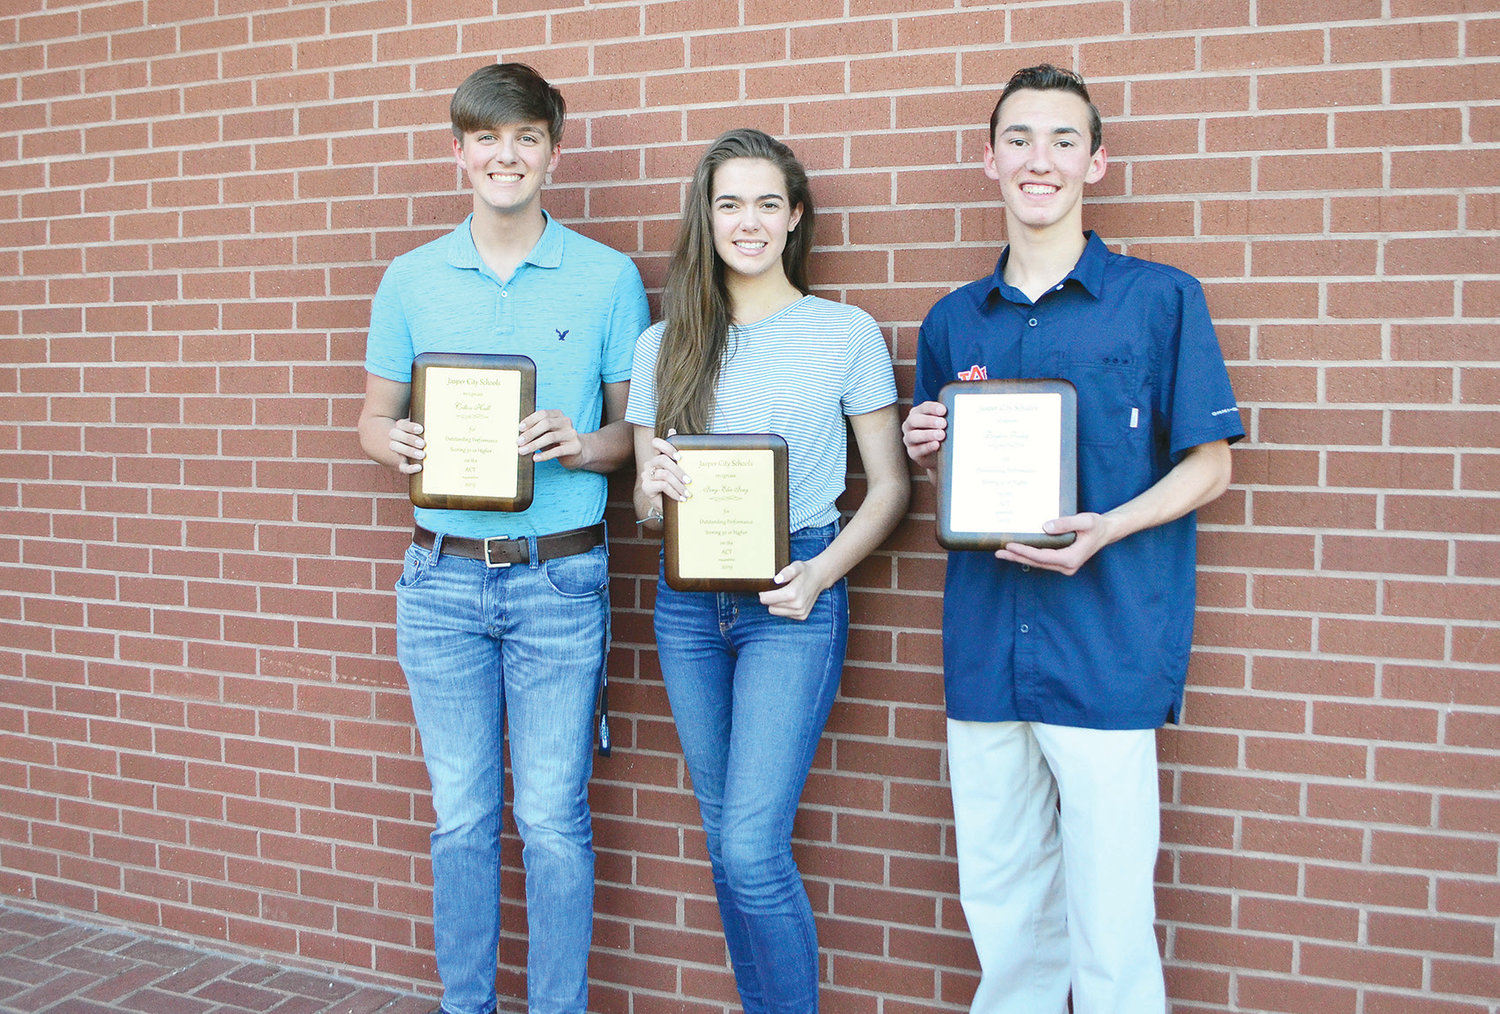 Three Jasper High School students were named part of the school's ACT 30+ Club at the Jasper City Board of Education meeting Monday. From left to right, Colton Hall, Ivey-Elise Ivey and Dayton Talley have all earned a 30 or higher on the ACT. The highest score a student can receive is a 36. High ACT scores can help students earn full ride scholarships to colleges and universities. Over 20 Jasper High students have earned ACT scores of 30 or greater.